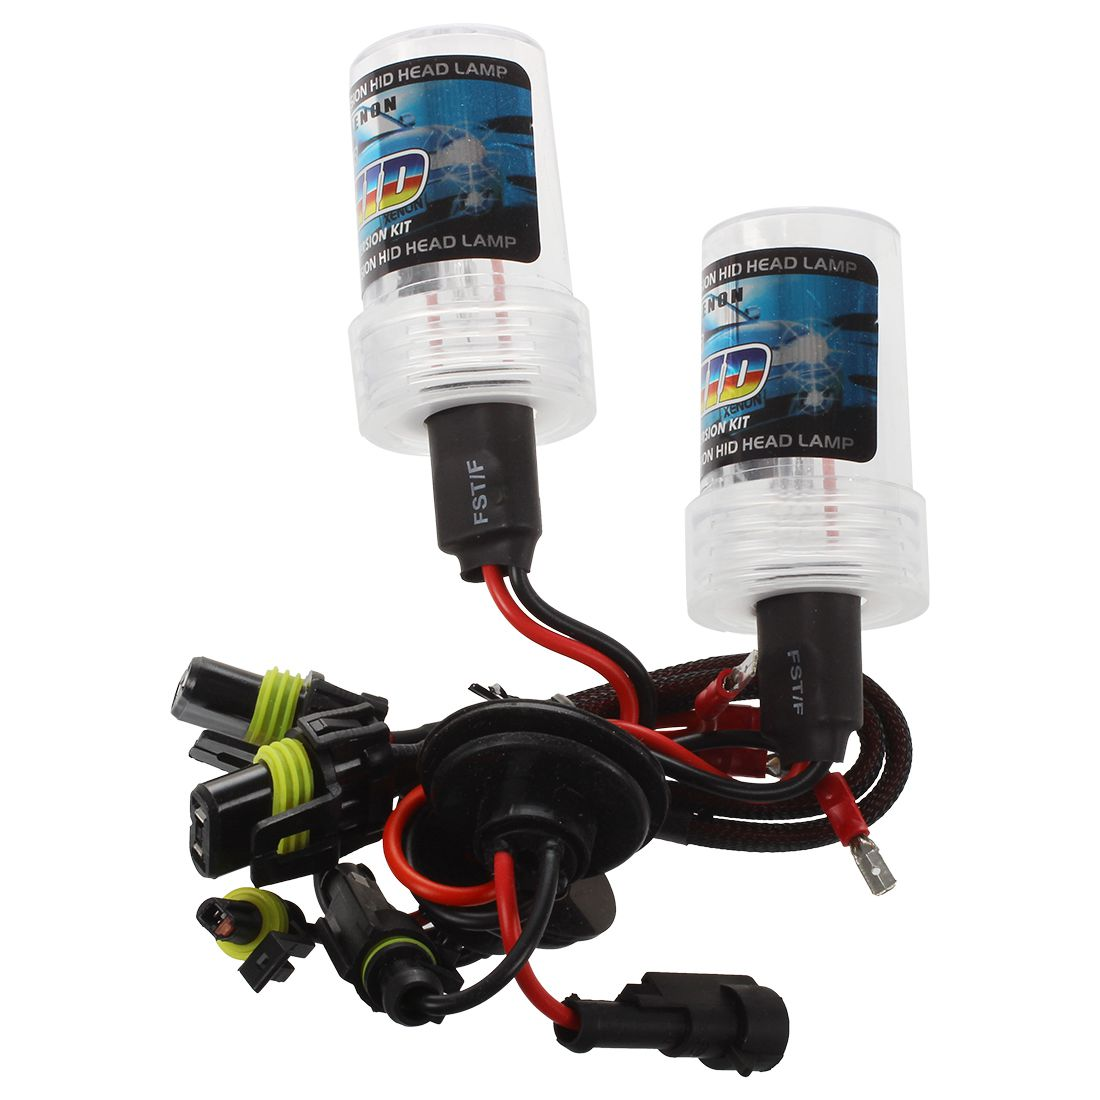 2 Stk.55W HID xenon lamp car bulb light lamp kit Headlight 12V DC (H1 4300K)